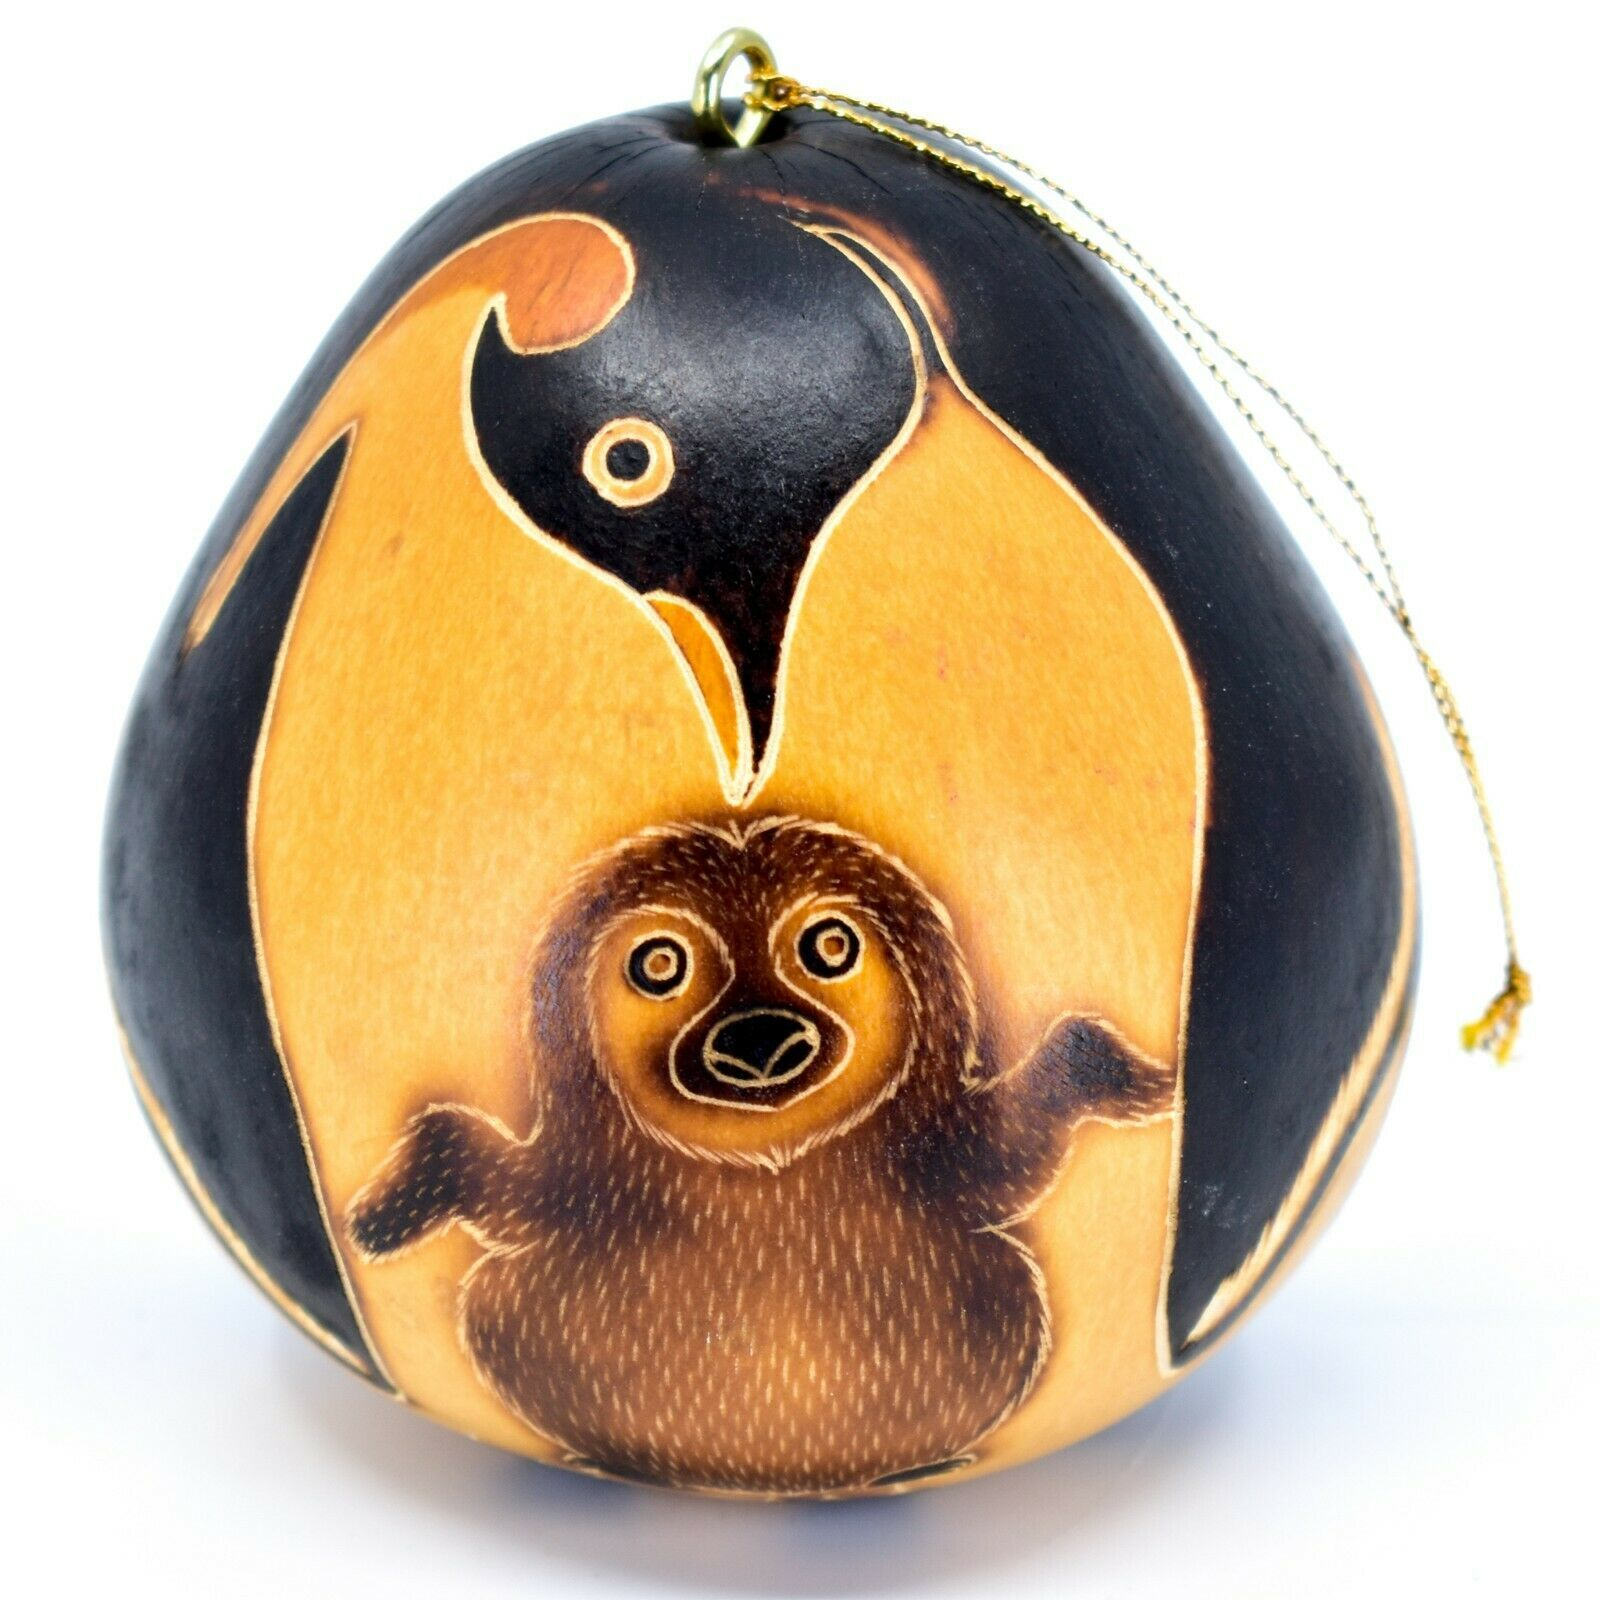 Handcrafted Carved Gourd Art Penguin Mom & Baby Zoo Animal Ornament Made in Peru